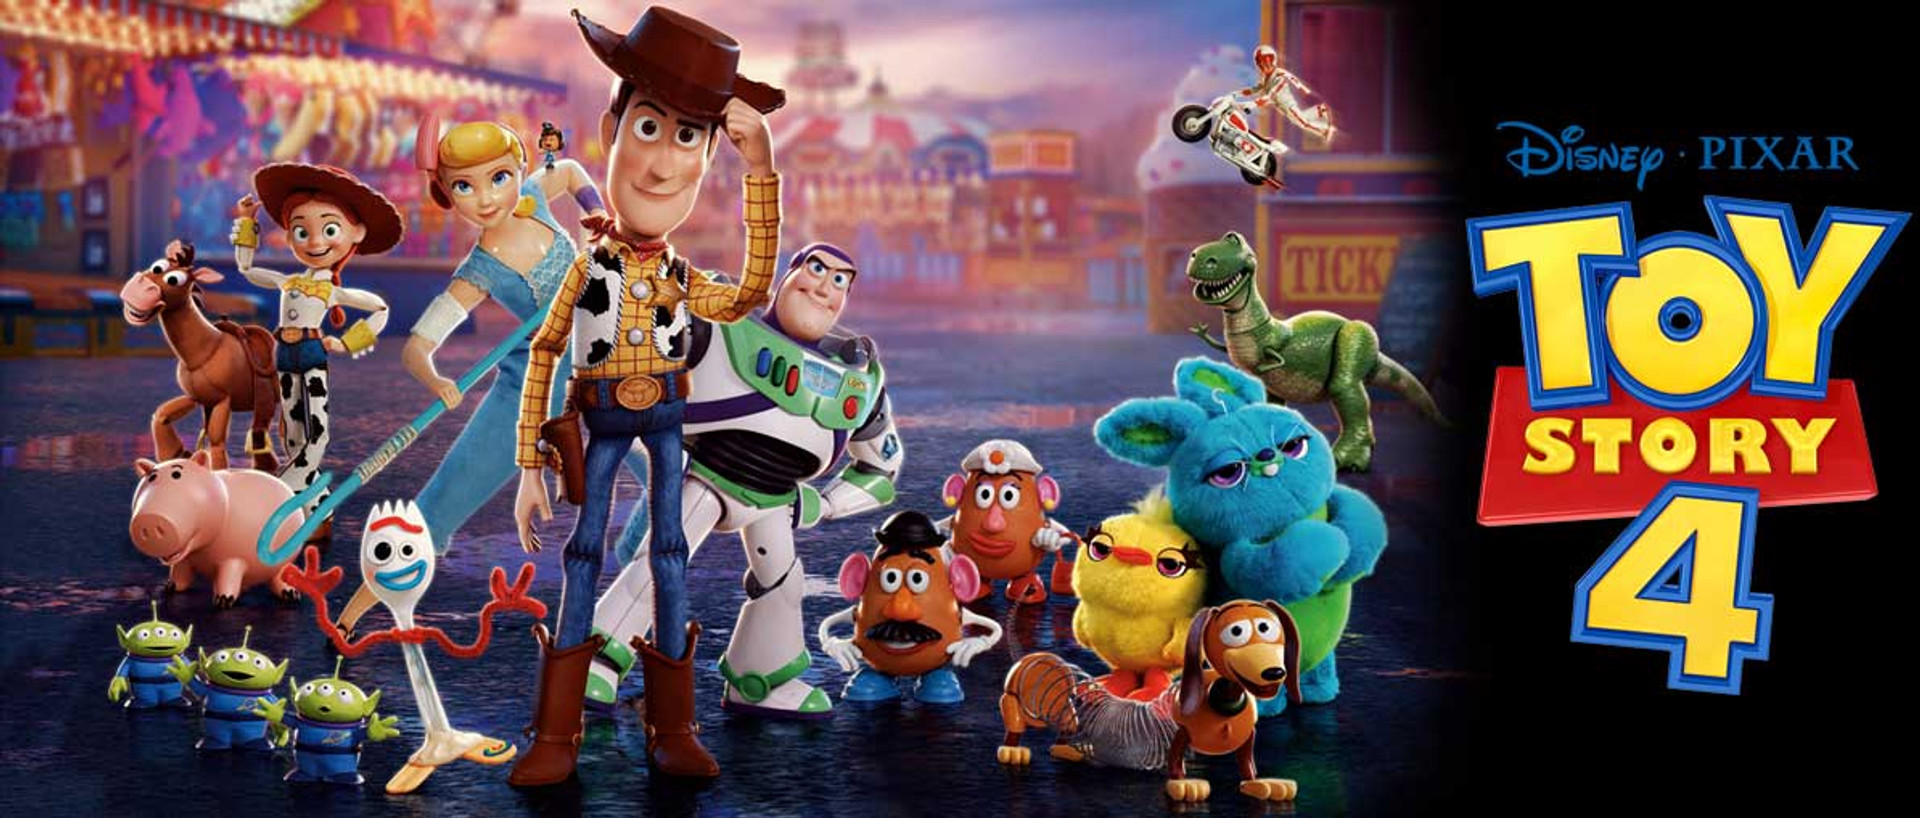 Toy Story 4 character Cardboard Cutouts